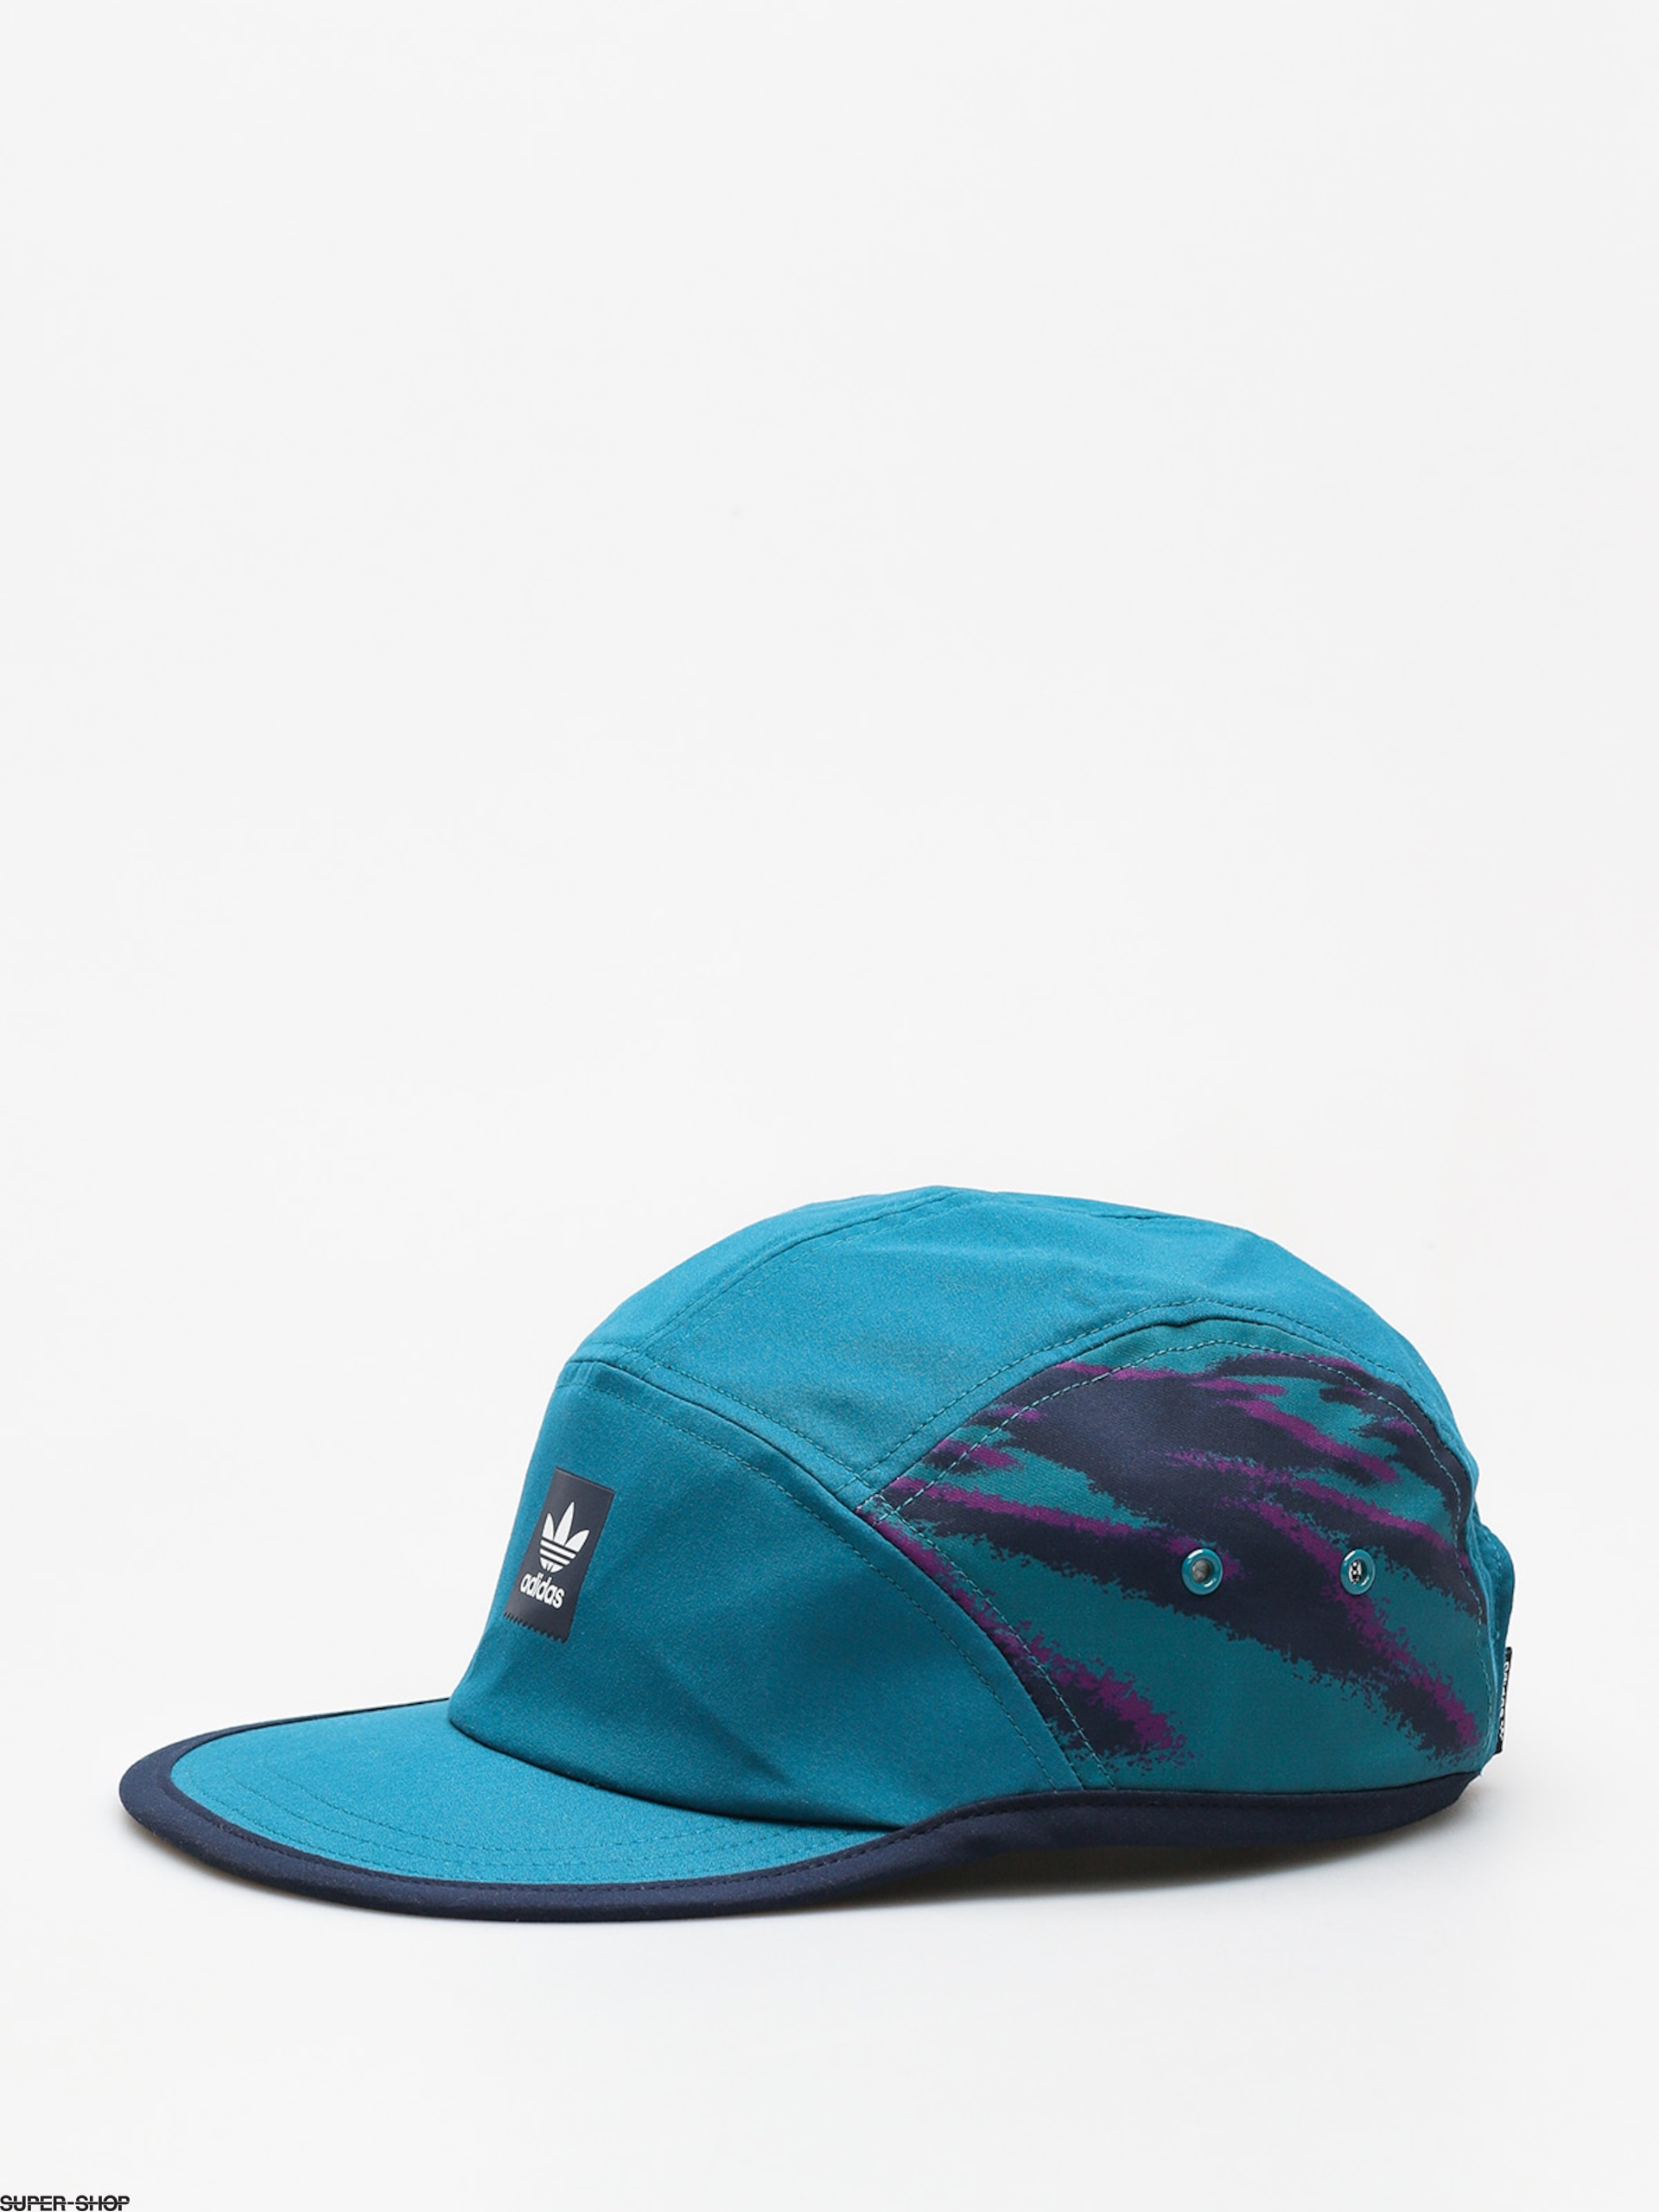 5afffe0a200 959373-w1920-adidas-cap-court-5-panel-zd-real-teal-s18.jpg